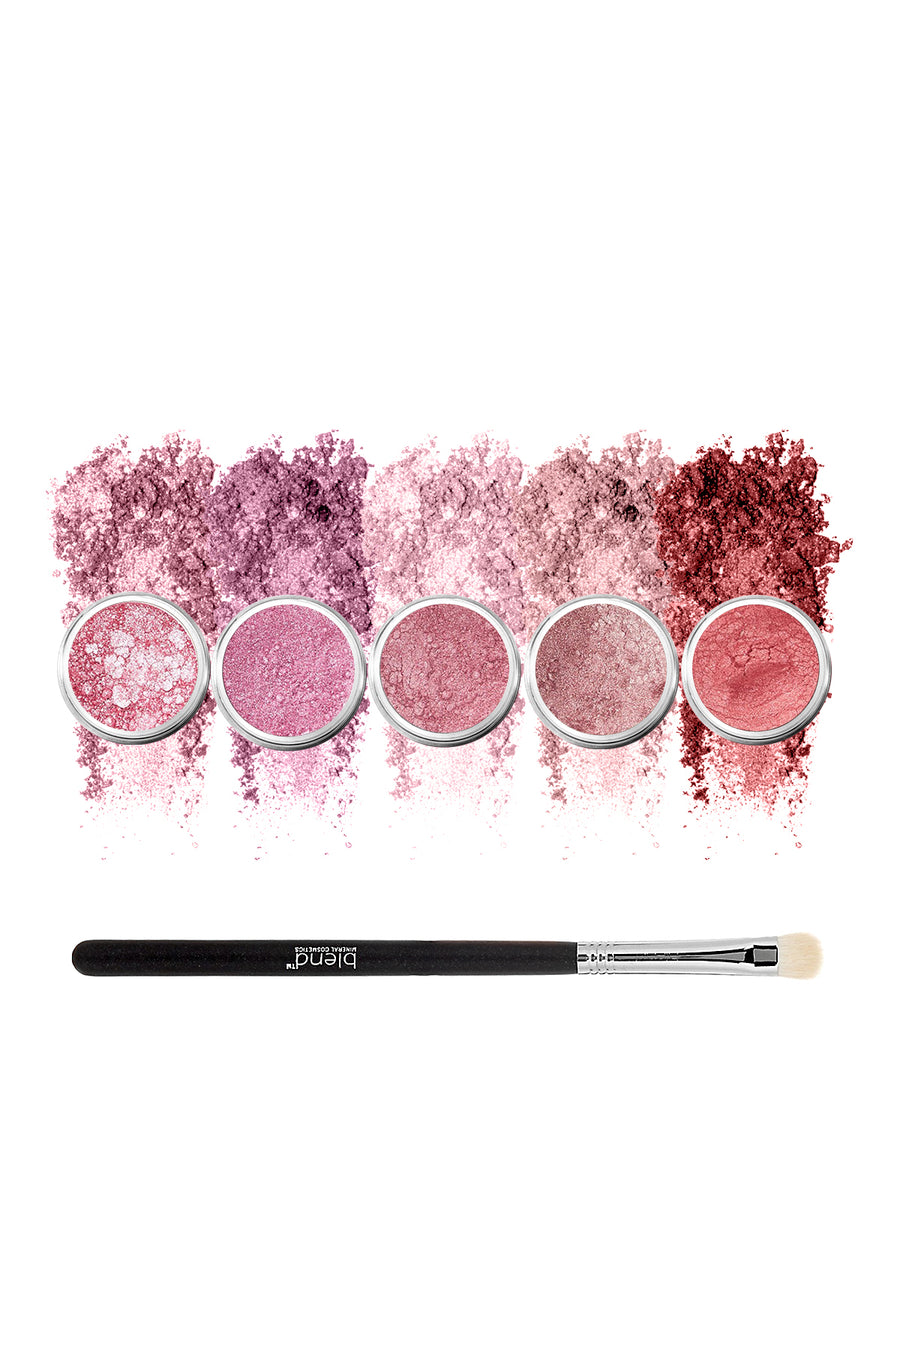 Natural World of Rose Eyeshadow 7-Piece Set